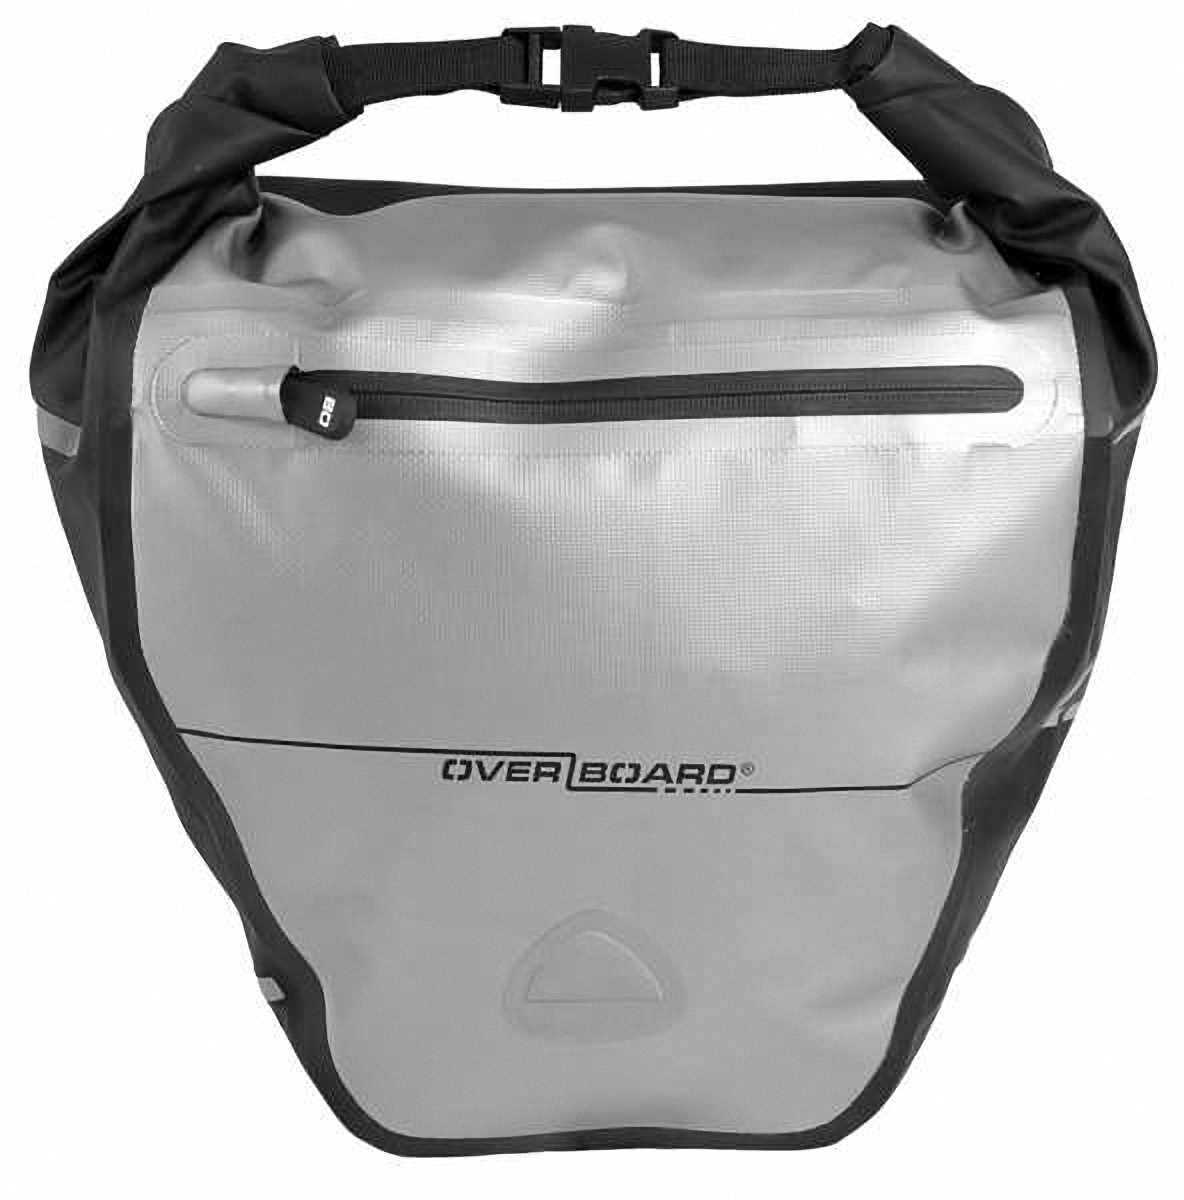 Водонепроницаемая сумка OverBoard OB1077BLK - Waterproof Back Wheel Bike Pannier - 16L. Фото 4